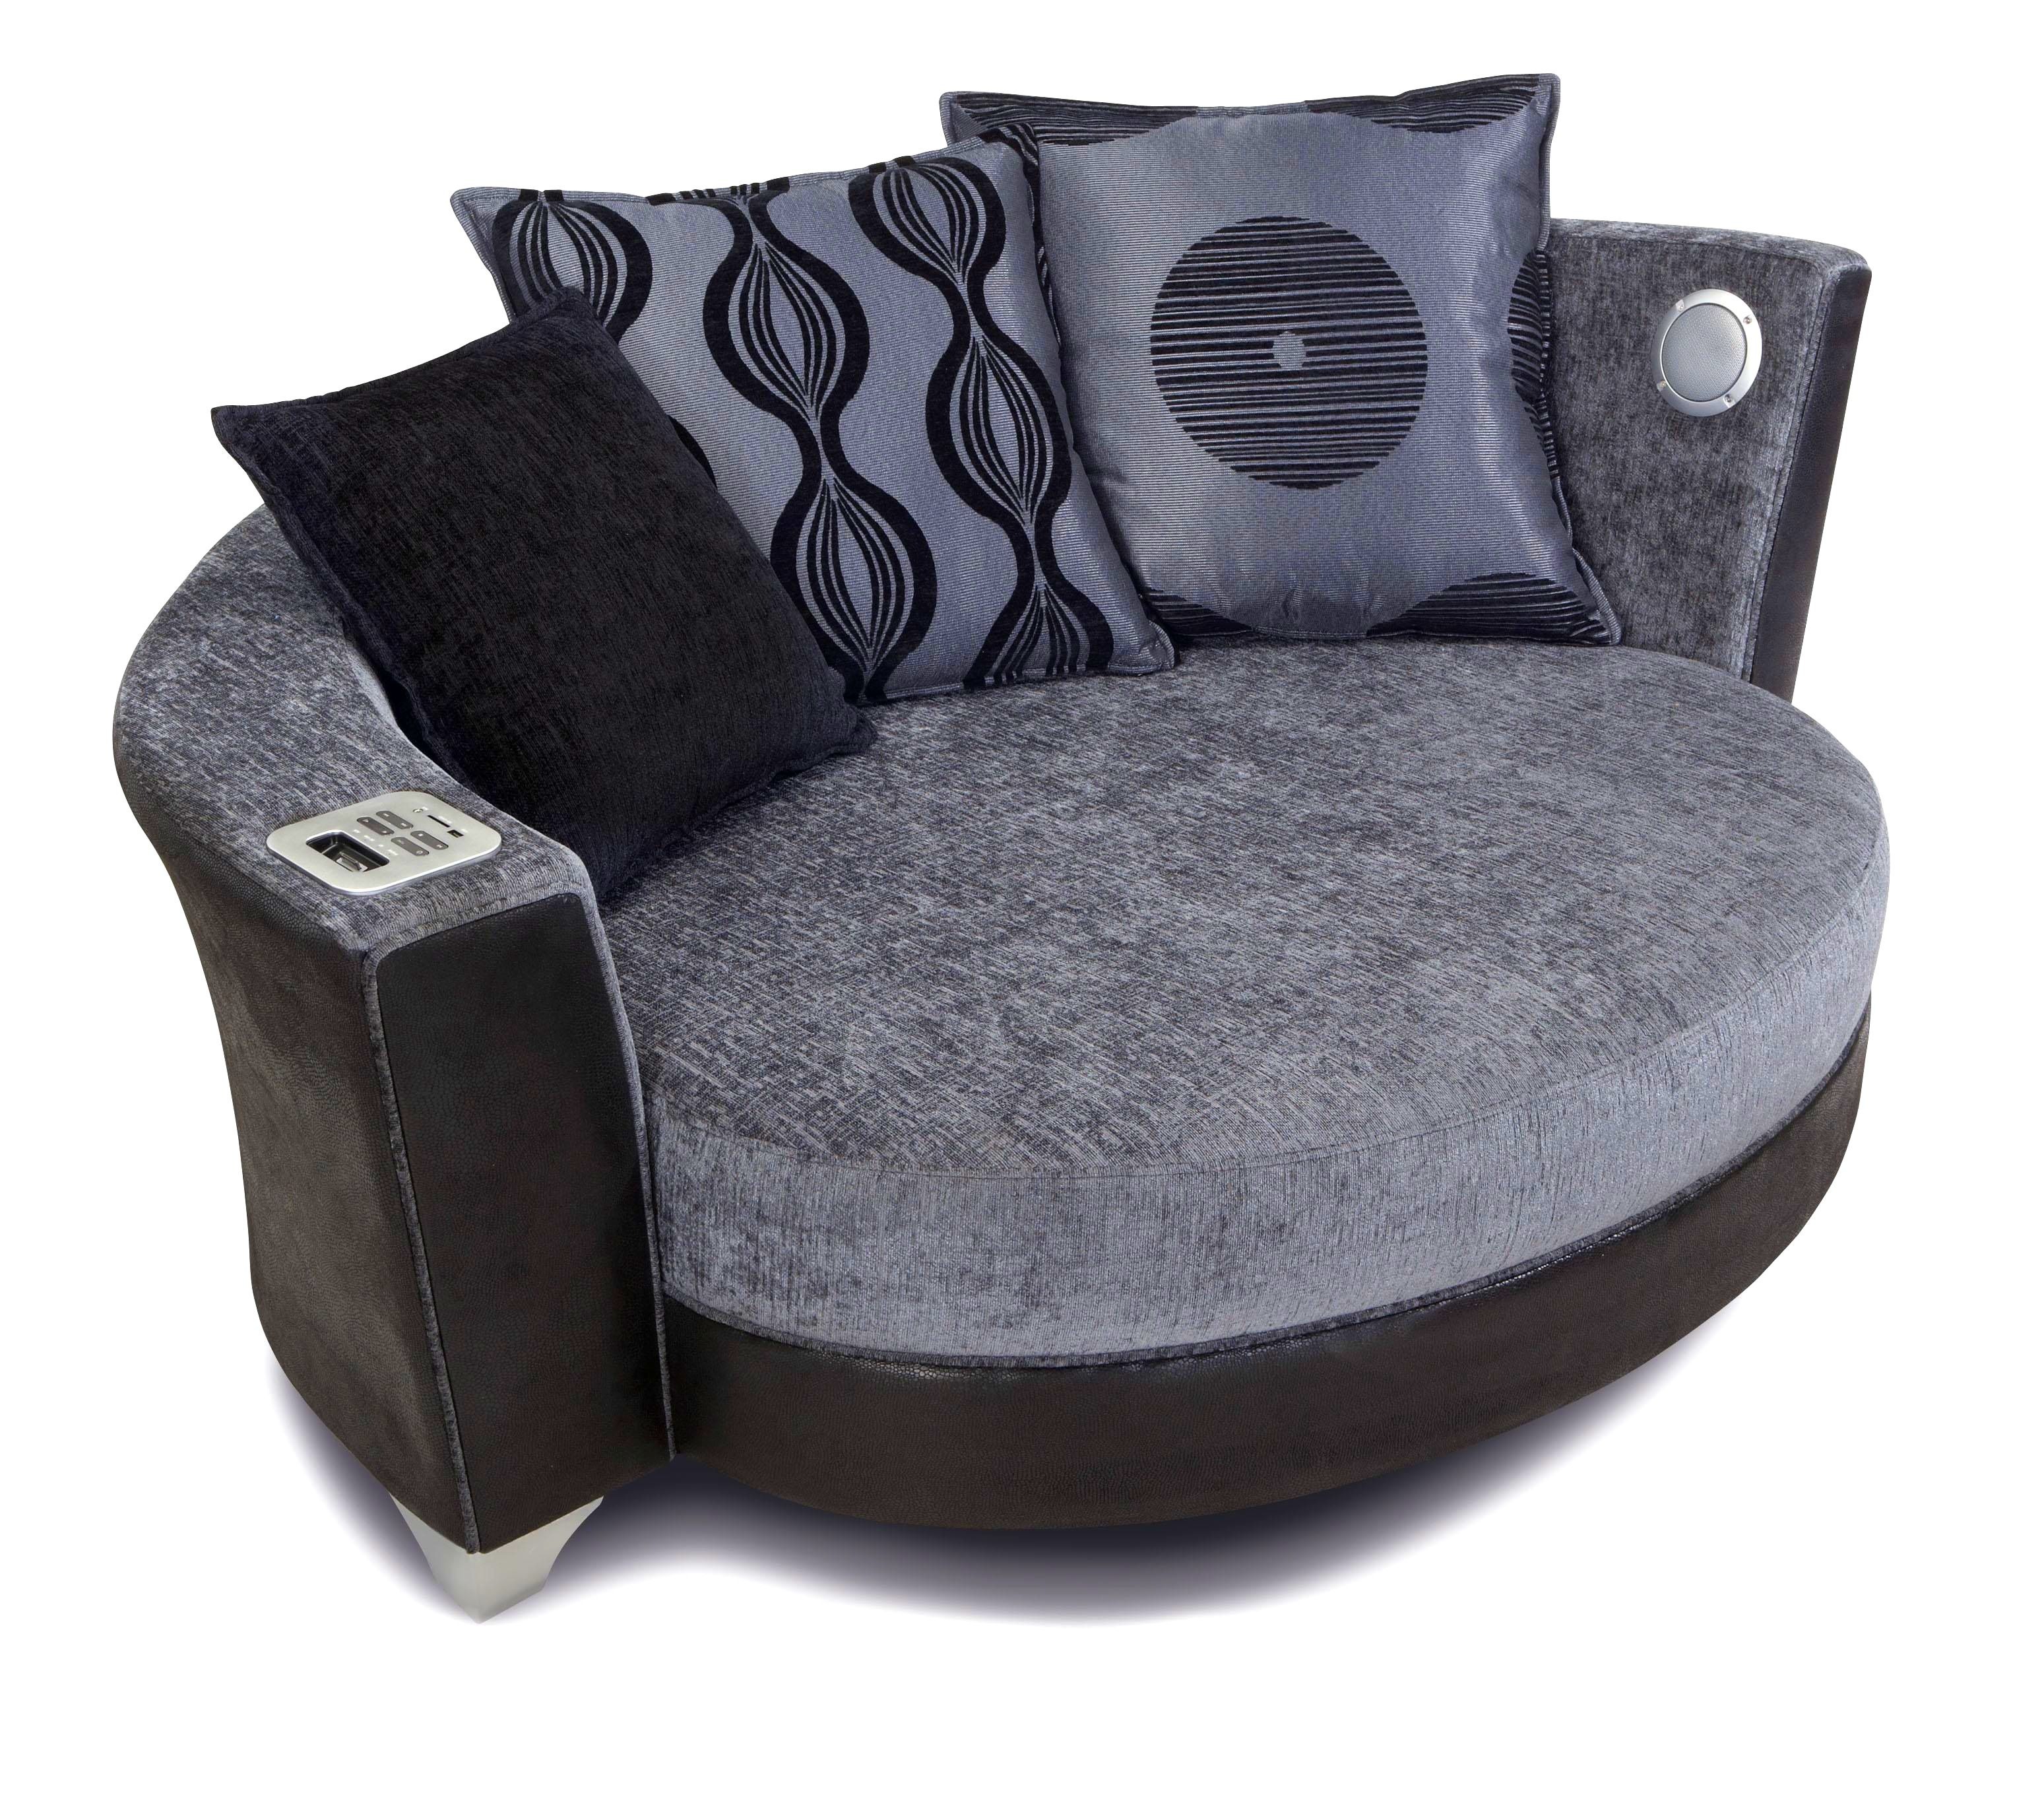 Gaming Sofa Best Collections Of Sofas And Couches Sofacouchs Com Gaming Sofa Farmhouse Table Chairs Oversized Chair And Ottoman